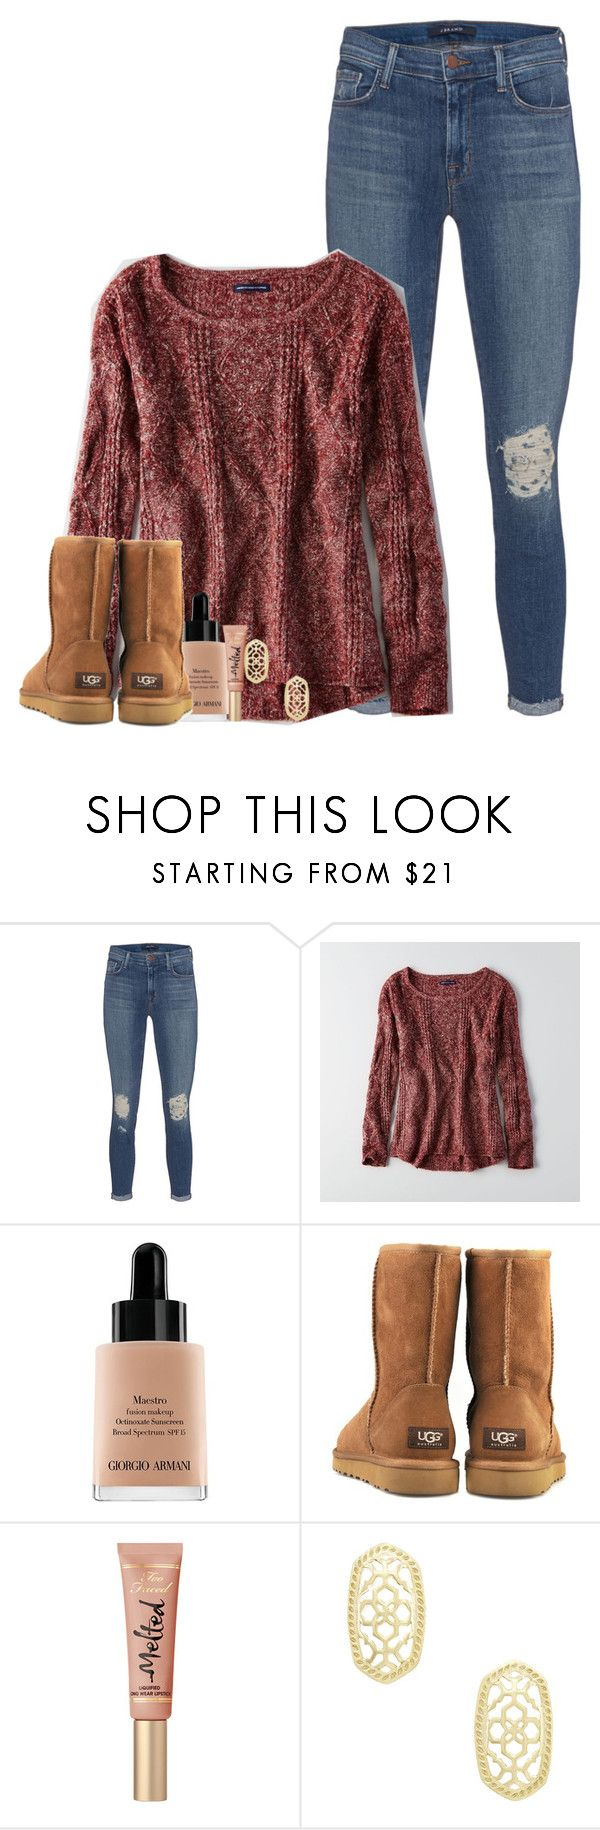 """Tag!!"" by laurenmf ❤ liked on Polyvore featuring J Brand, American Eagle Outfitters, Giorgio Armani, UGG Australia and Kendra Scott"